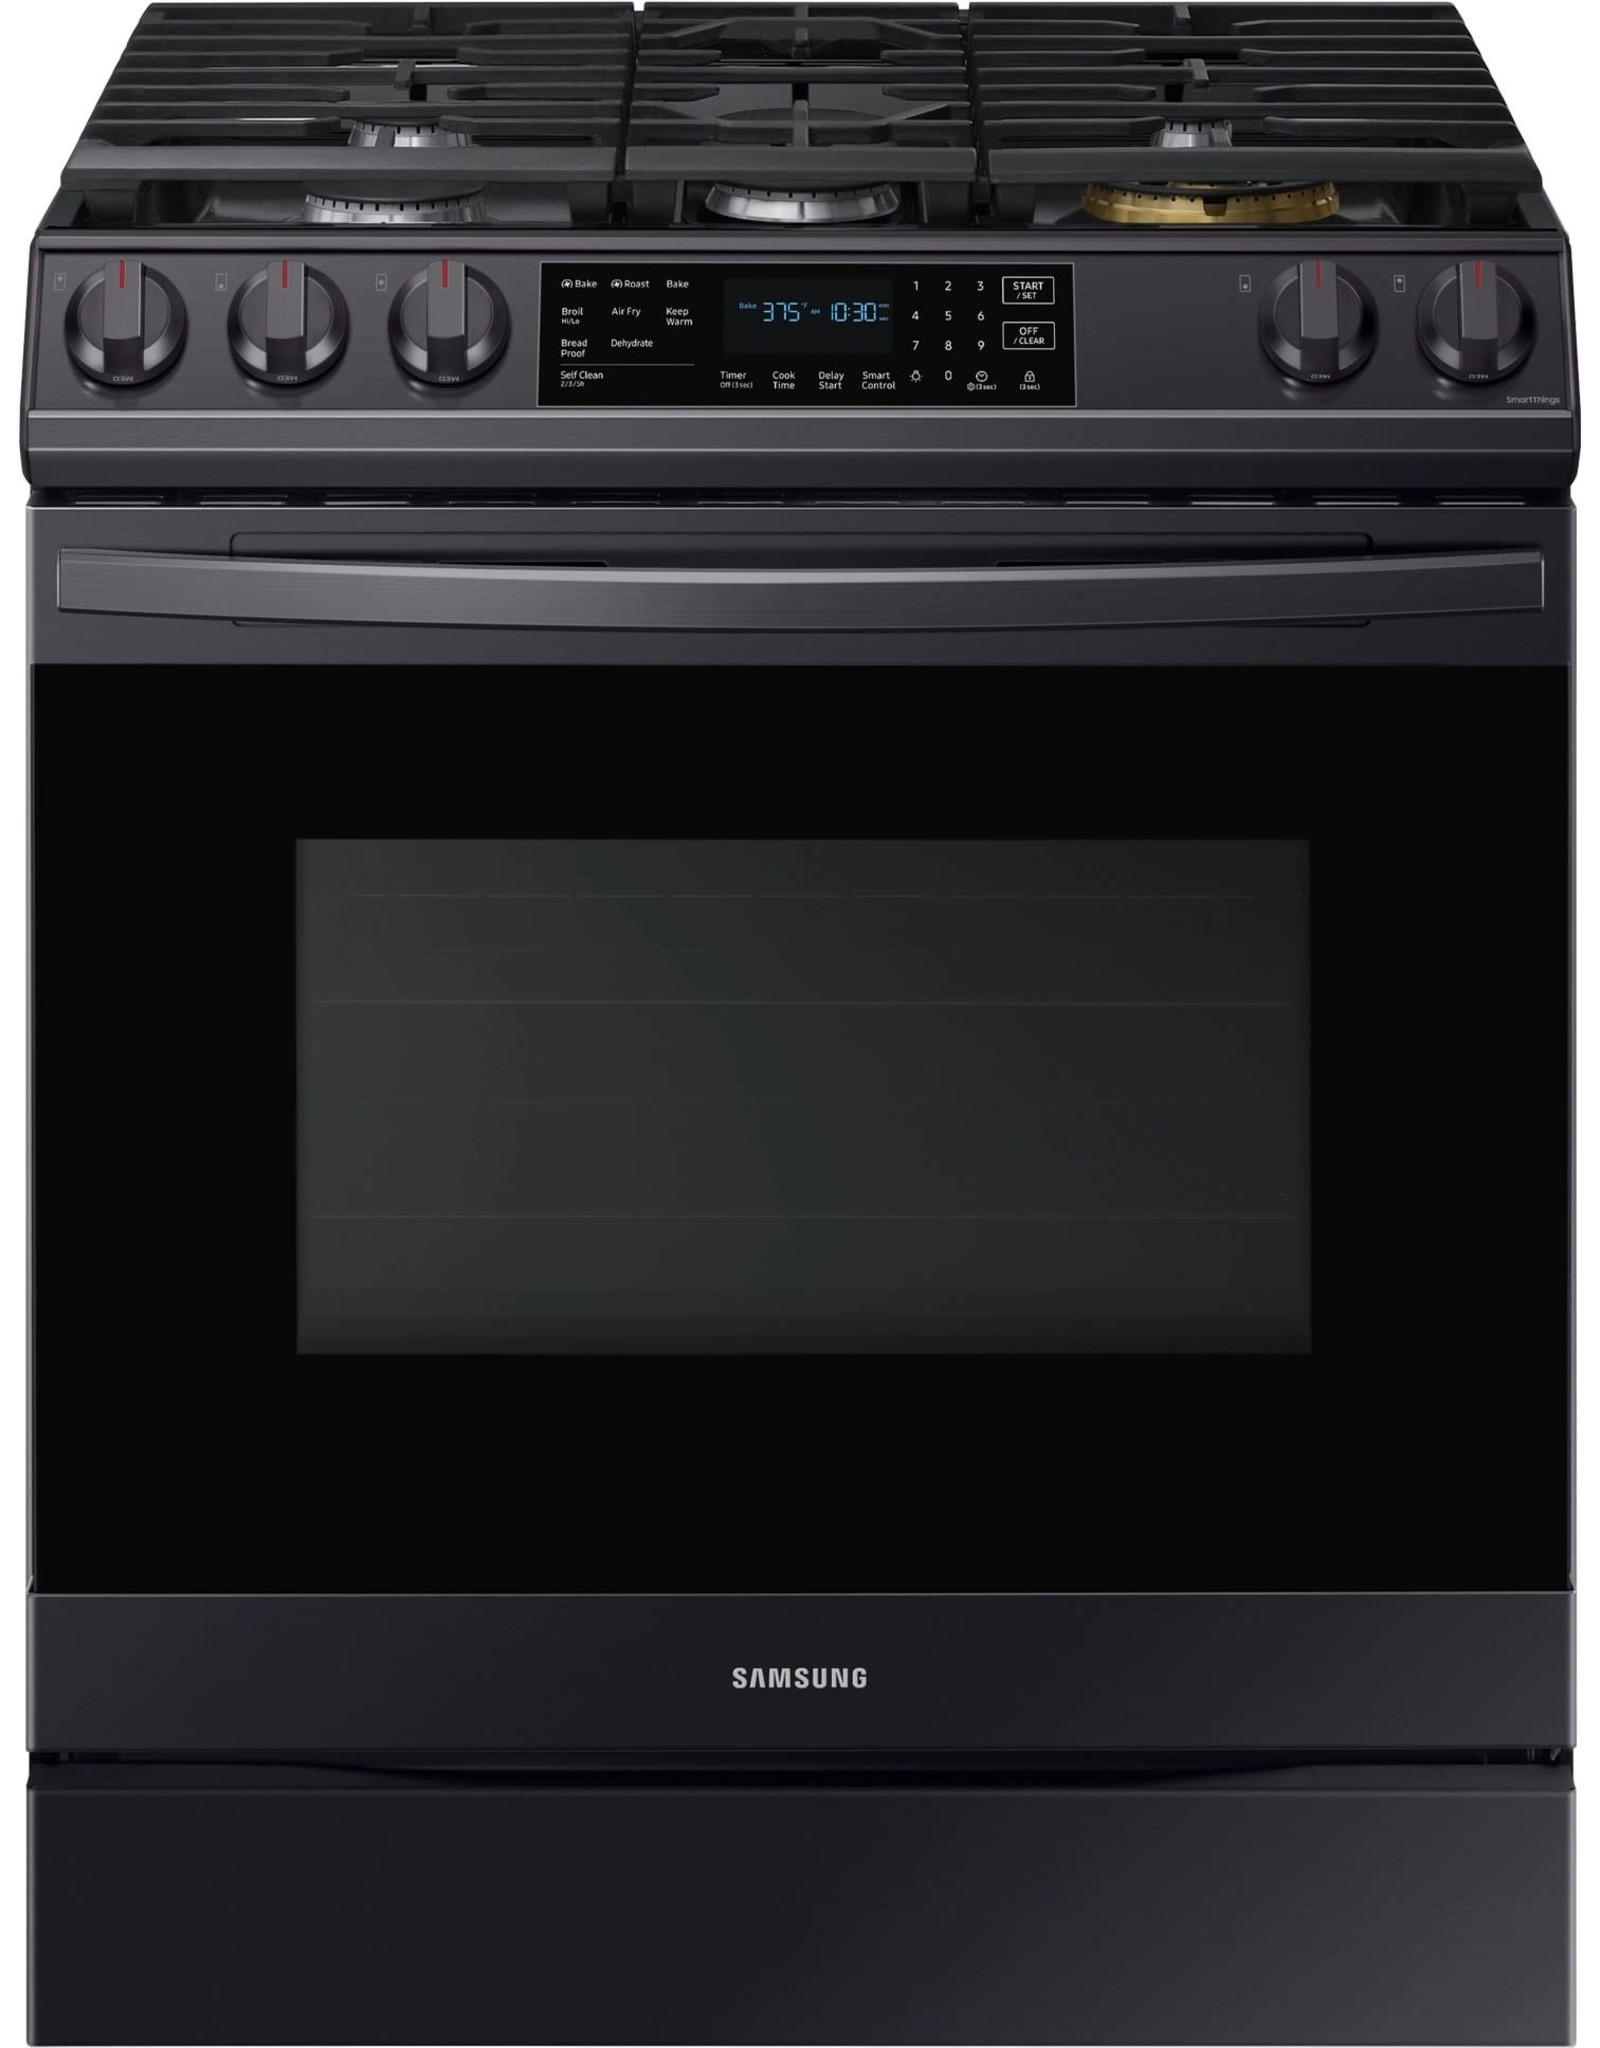 SAMSUNG NX60T8511SG 30 in. 6.0 cu. ft. Slide-In Gas Range with Air Fry and Fan Convection in Fingerprint Resistant Black Stainless Steel